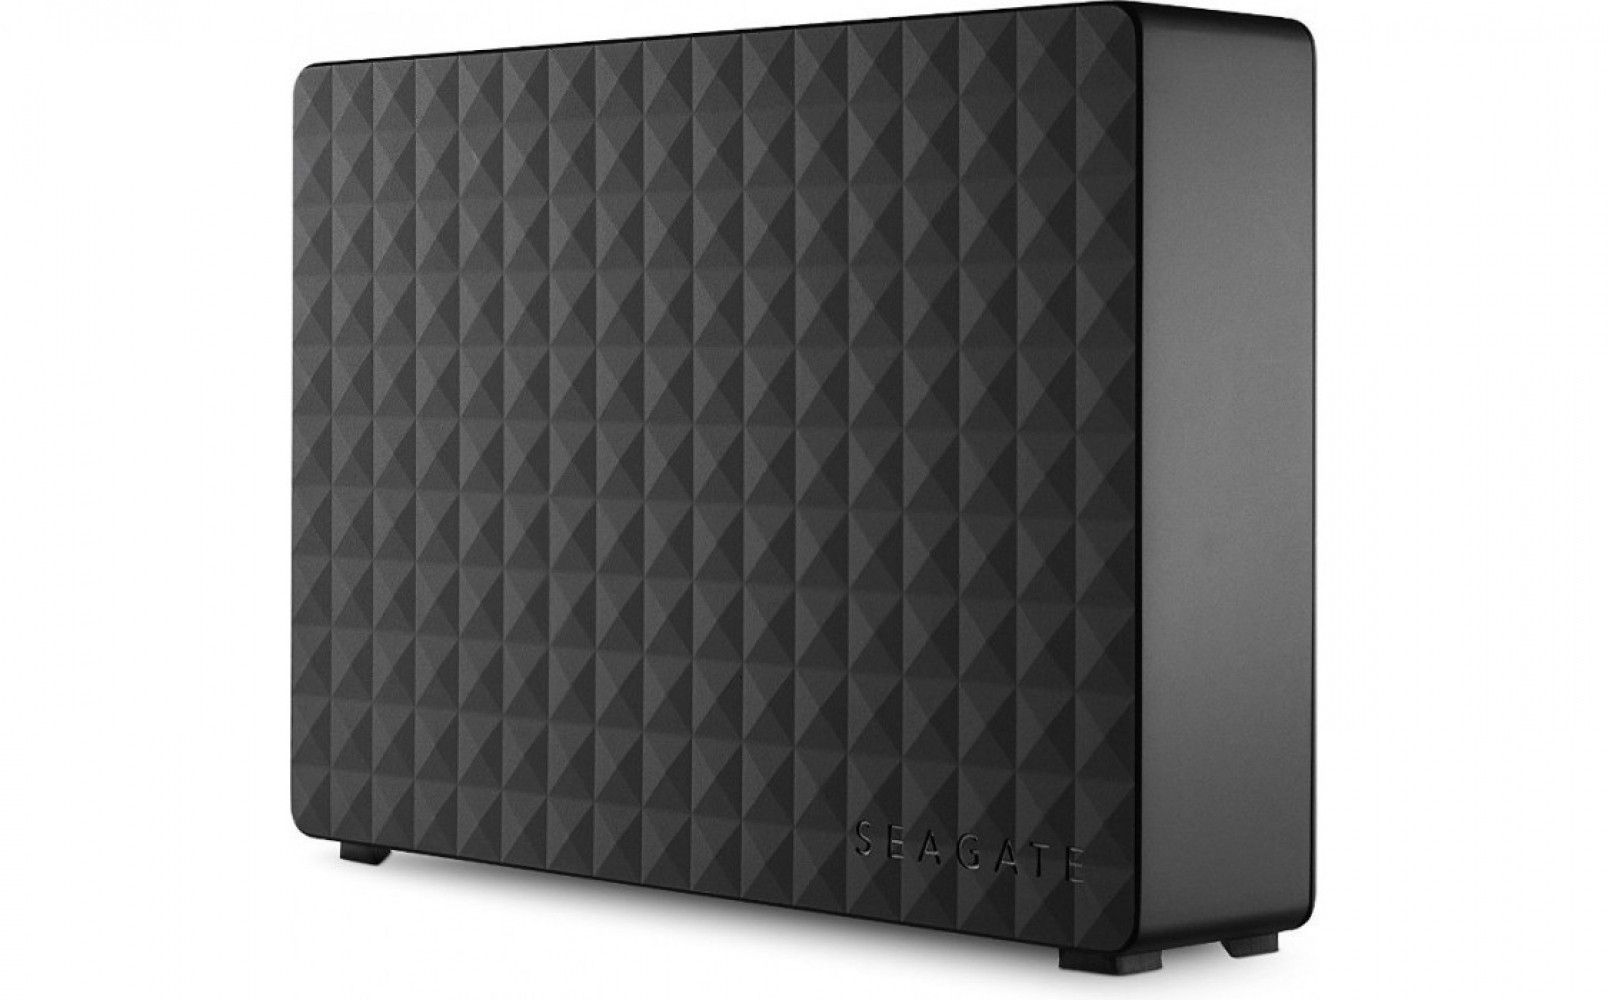 Купить Жесткий диск Seagate Expansion 2TB STEB2000200 3.5 USB 3.0 External Black